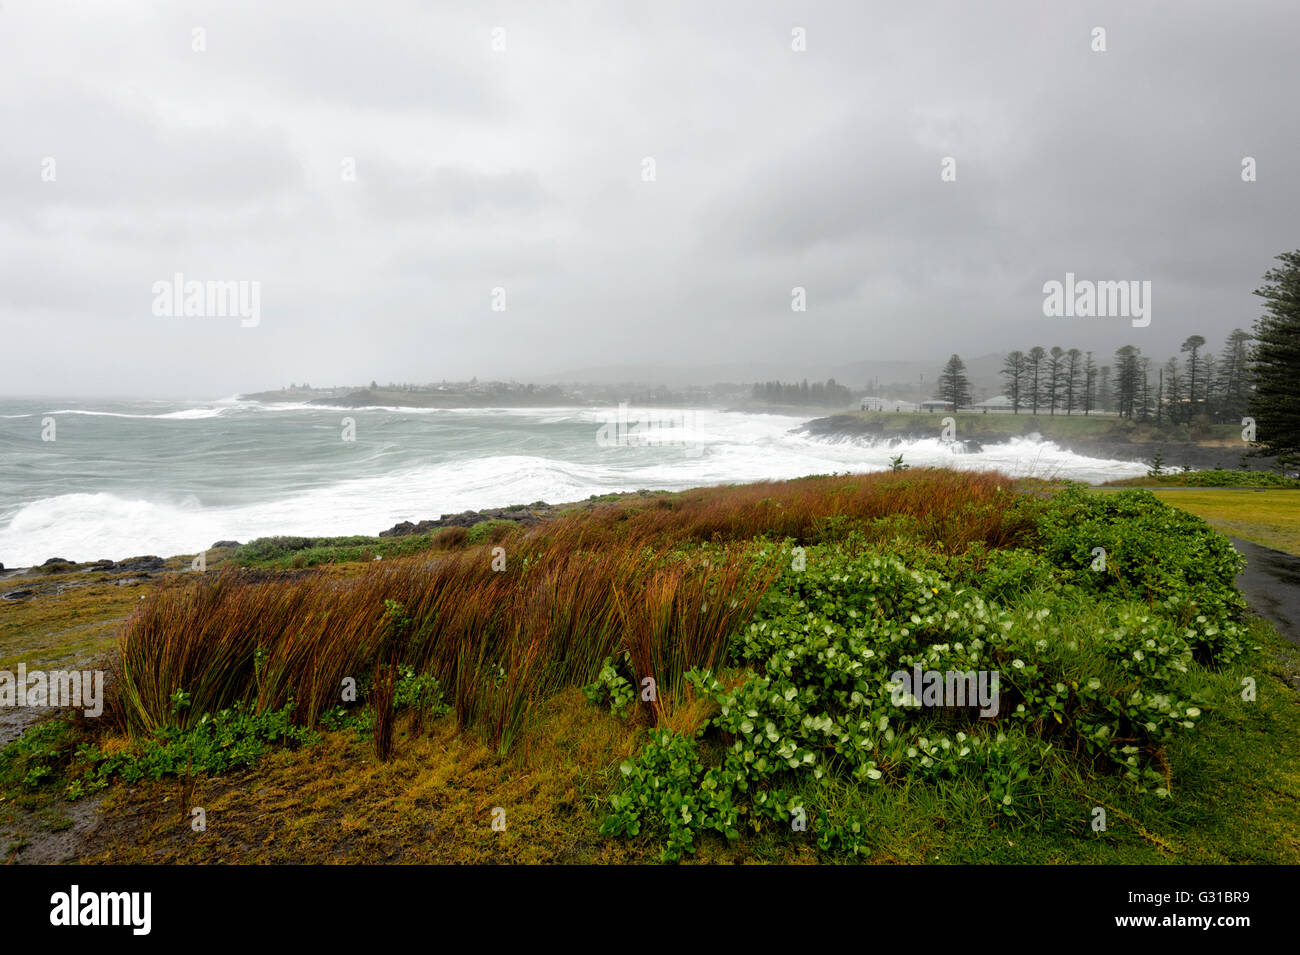 Kiama Coastline during a severe storm, New South Wales, Australia Stock Photo